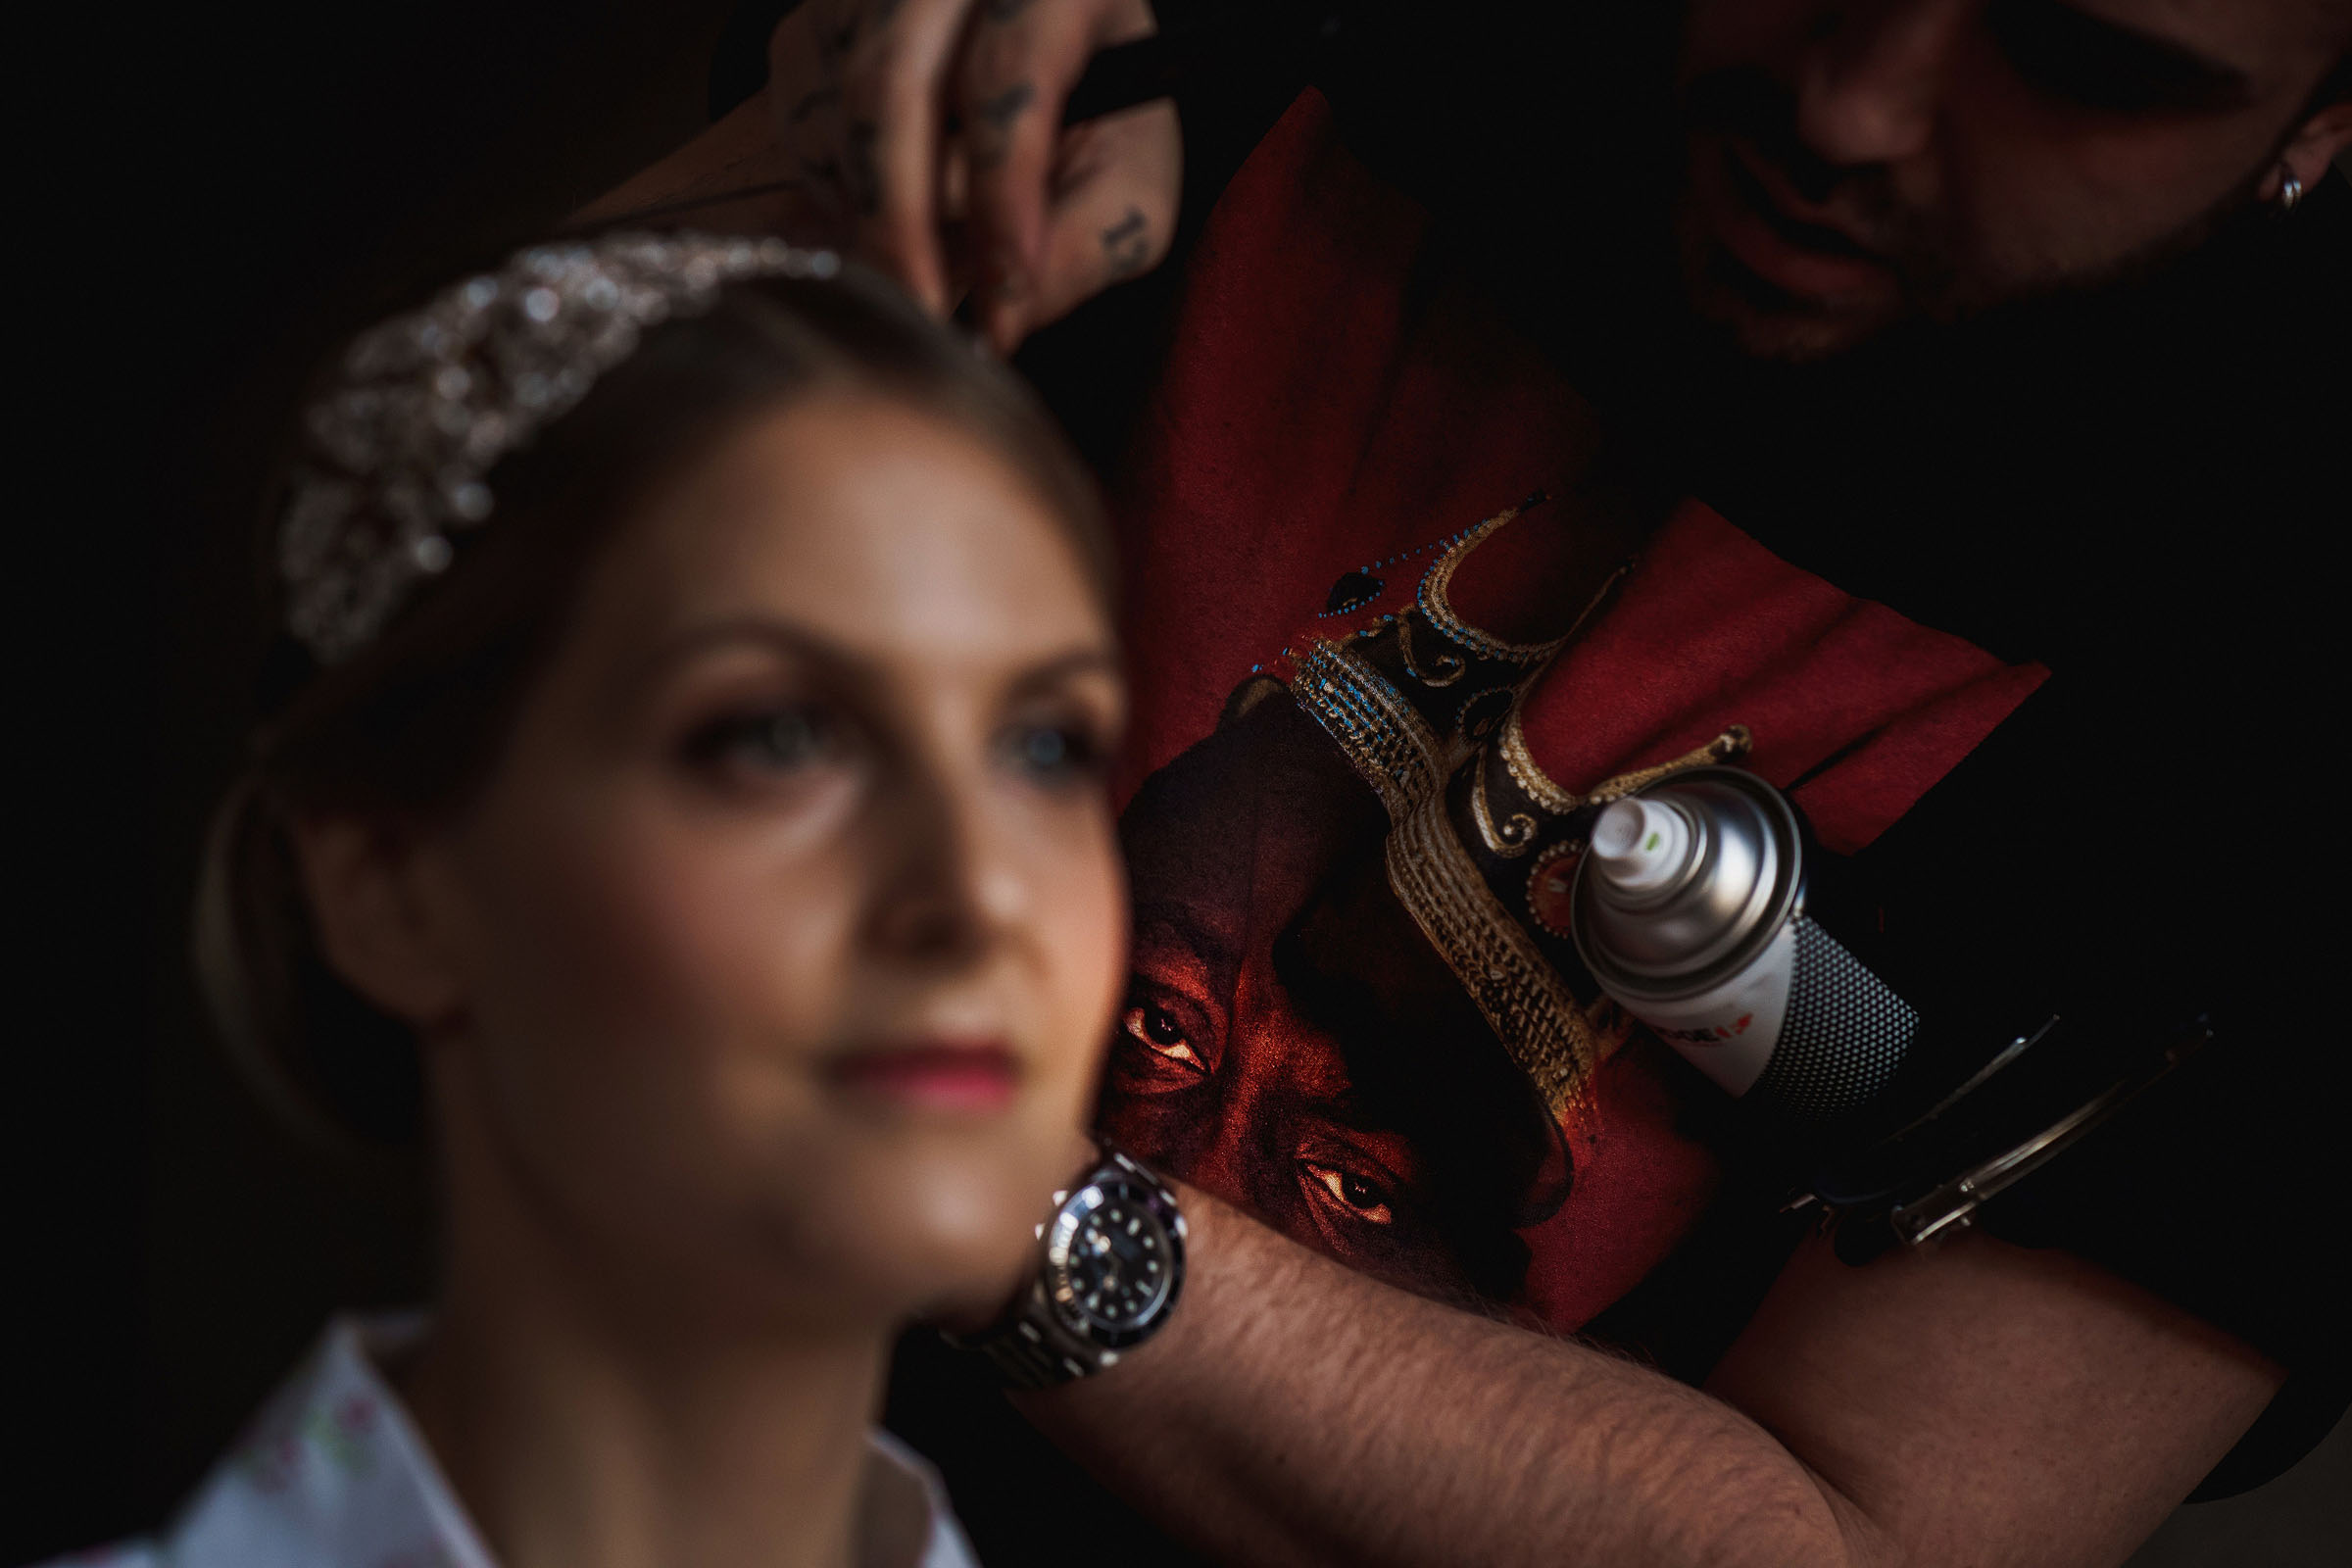 Bride with hairdresser - Photo by F5 Photography